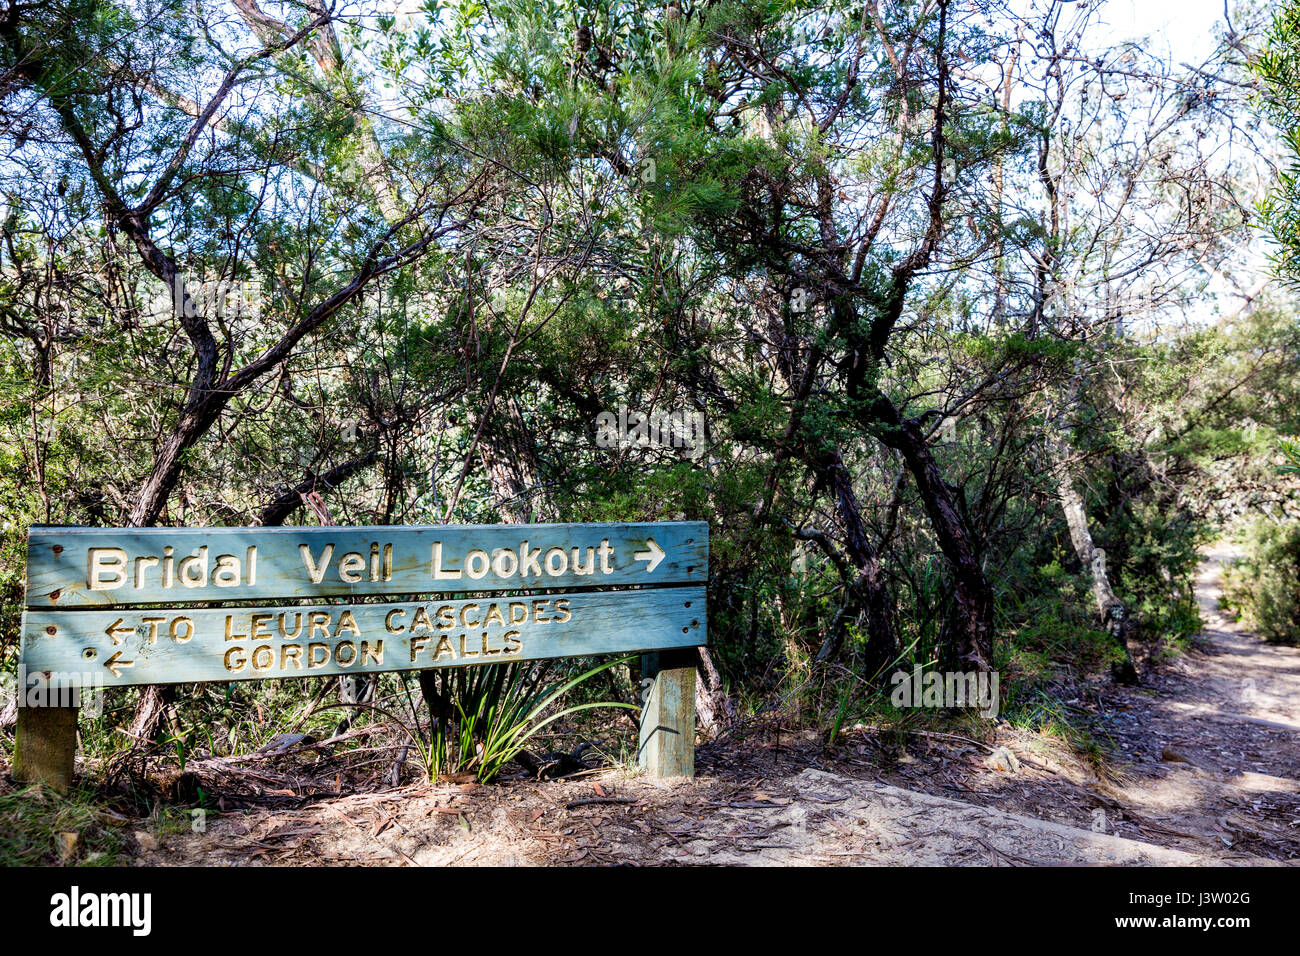 Blue Mountains national park sign for Bridal Veil Lookout, New south wales,Australia - Stock Image